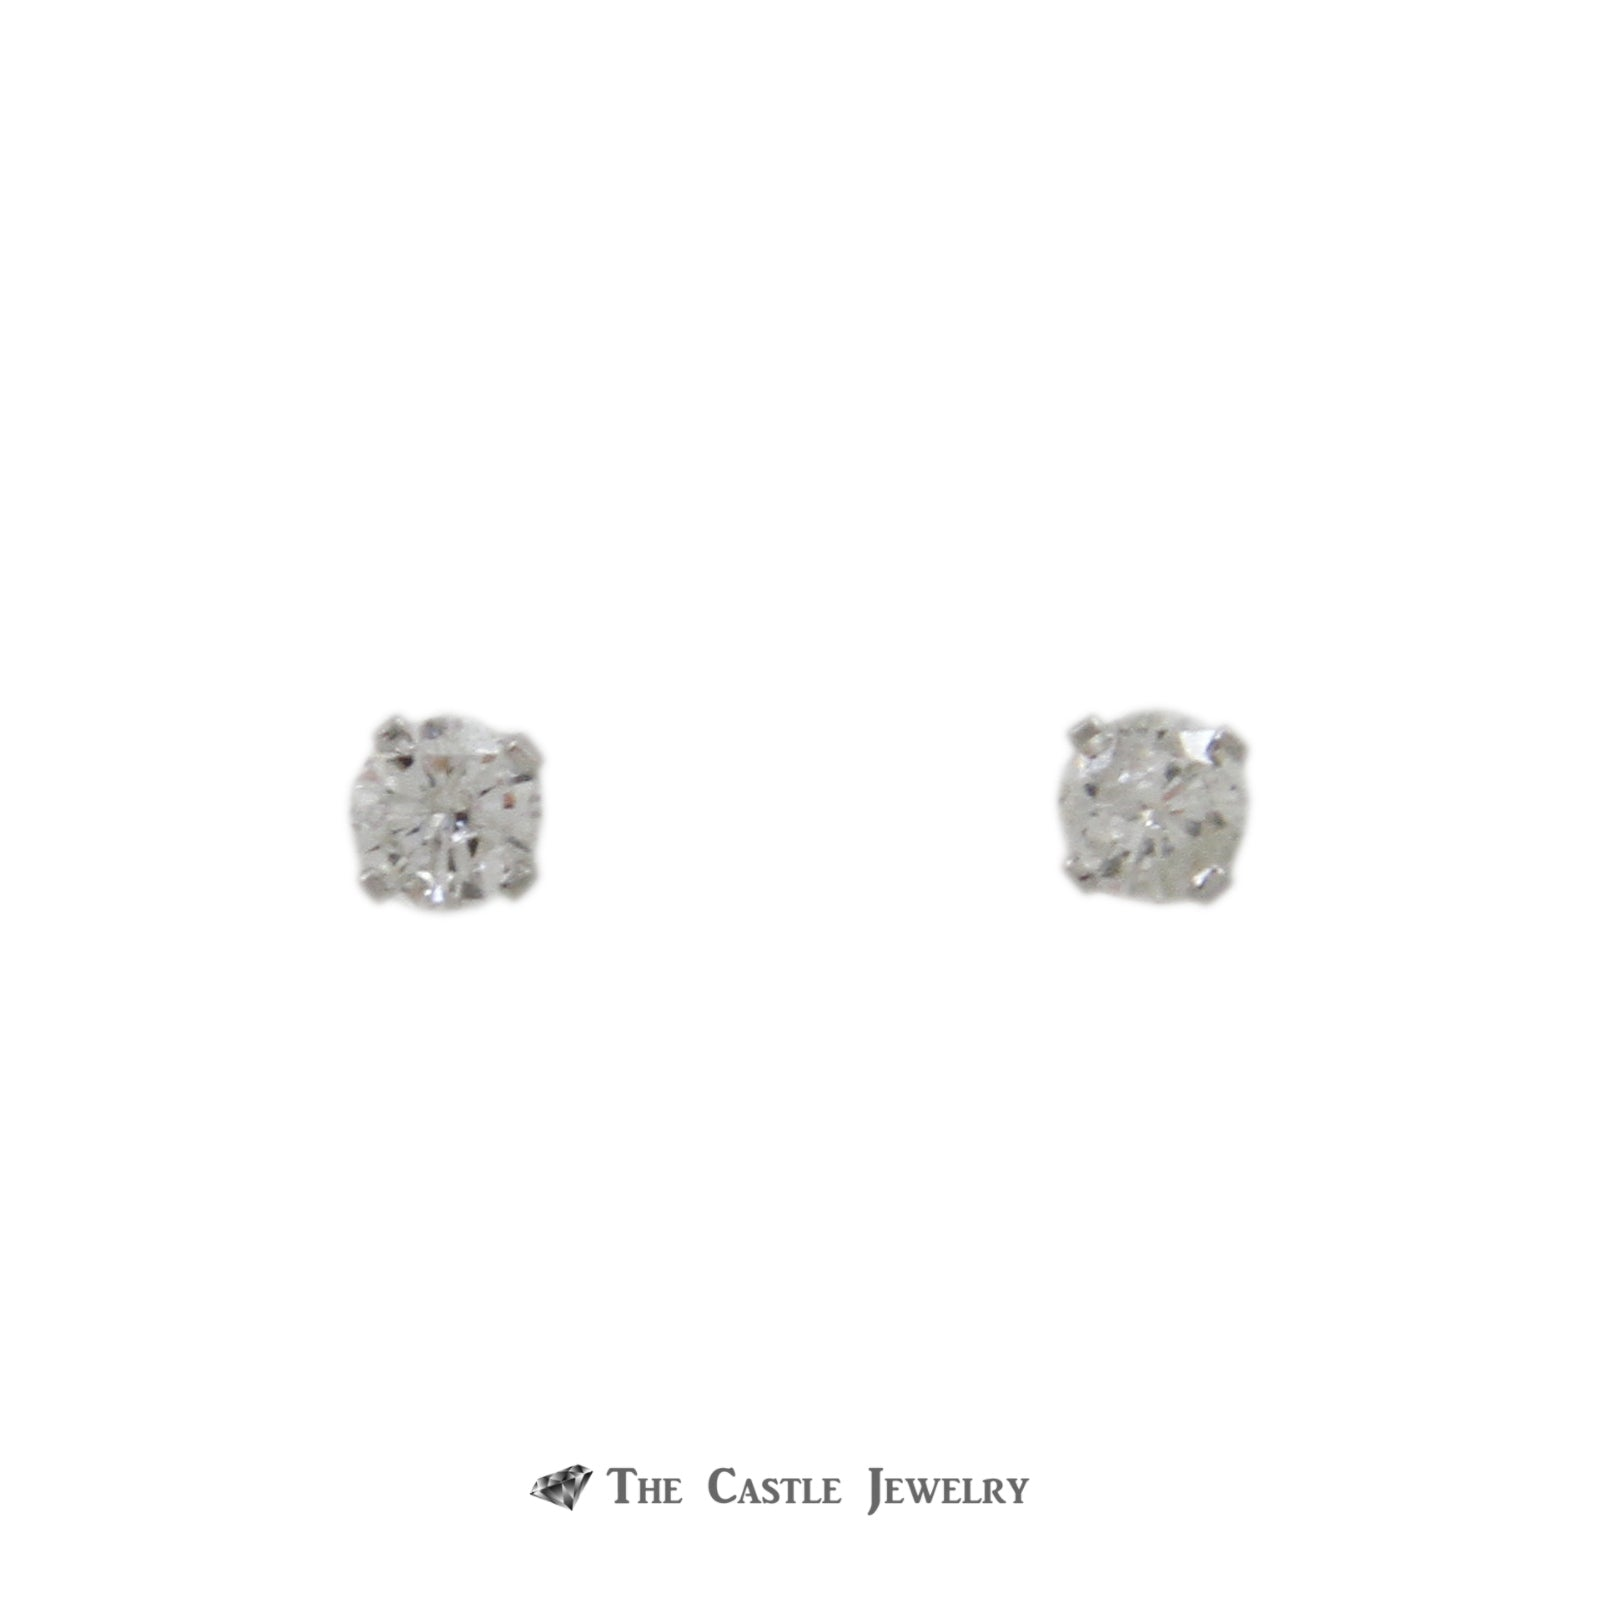 Round Brilliant Cut .25cttw Diamond Stud Earrings Crafted in 14k White Gold